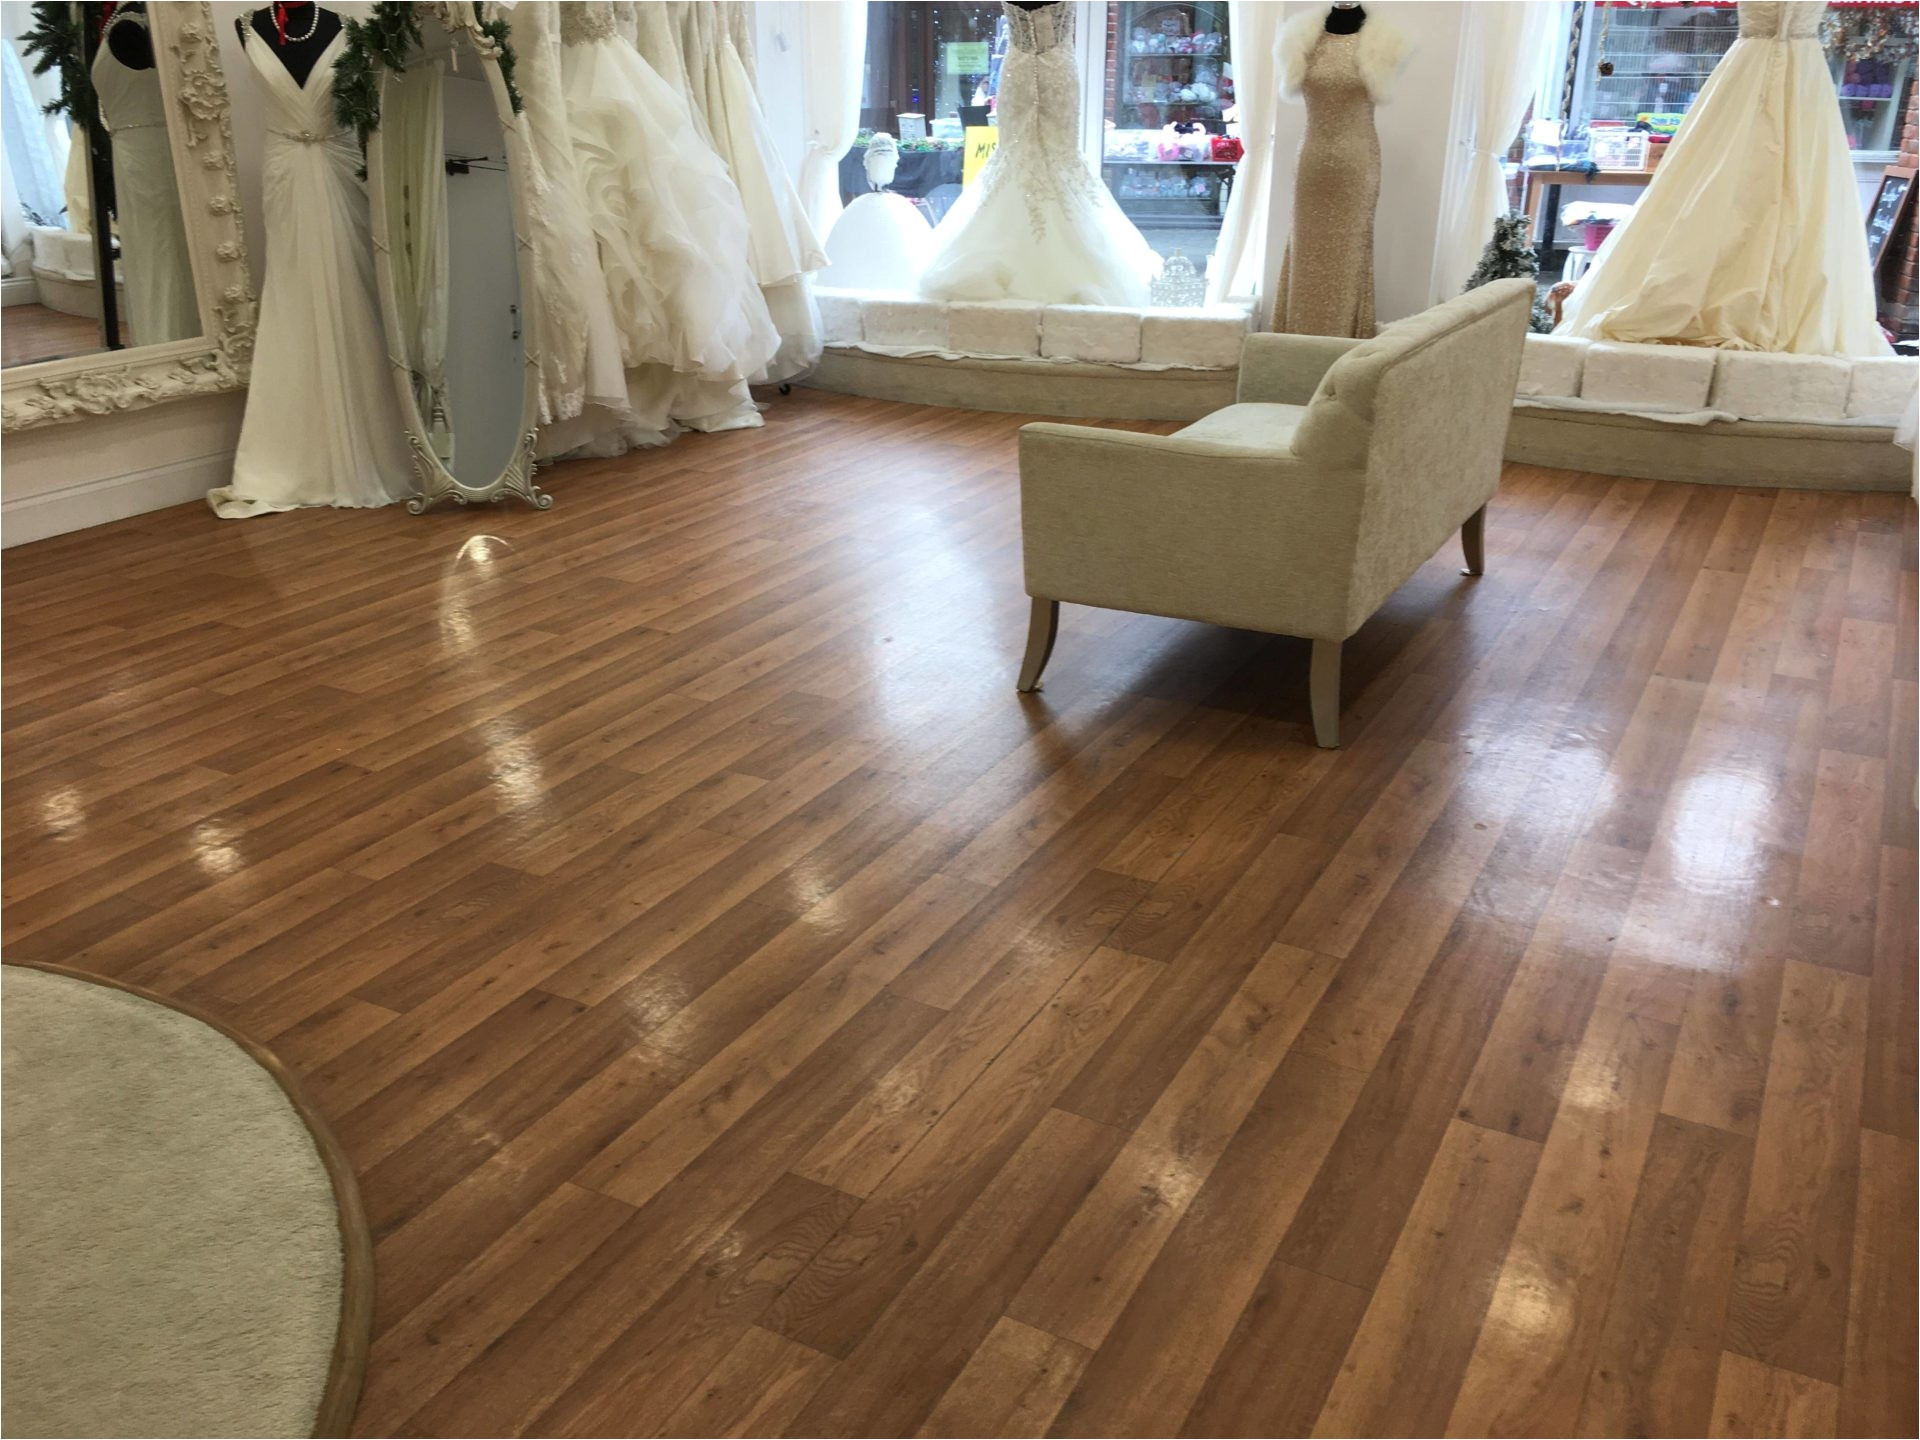 hardwood floor cleaning equipment of best mops for hardwood floors homemade laminate wood floor polish regarding best mops for hardwood floors homemade laminate wood floor polish laminate flooring best mop for